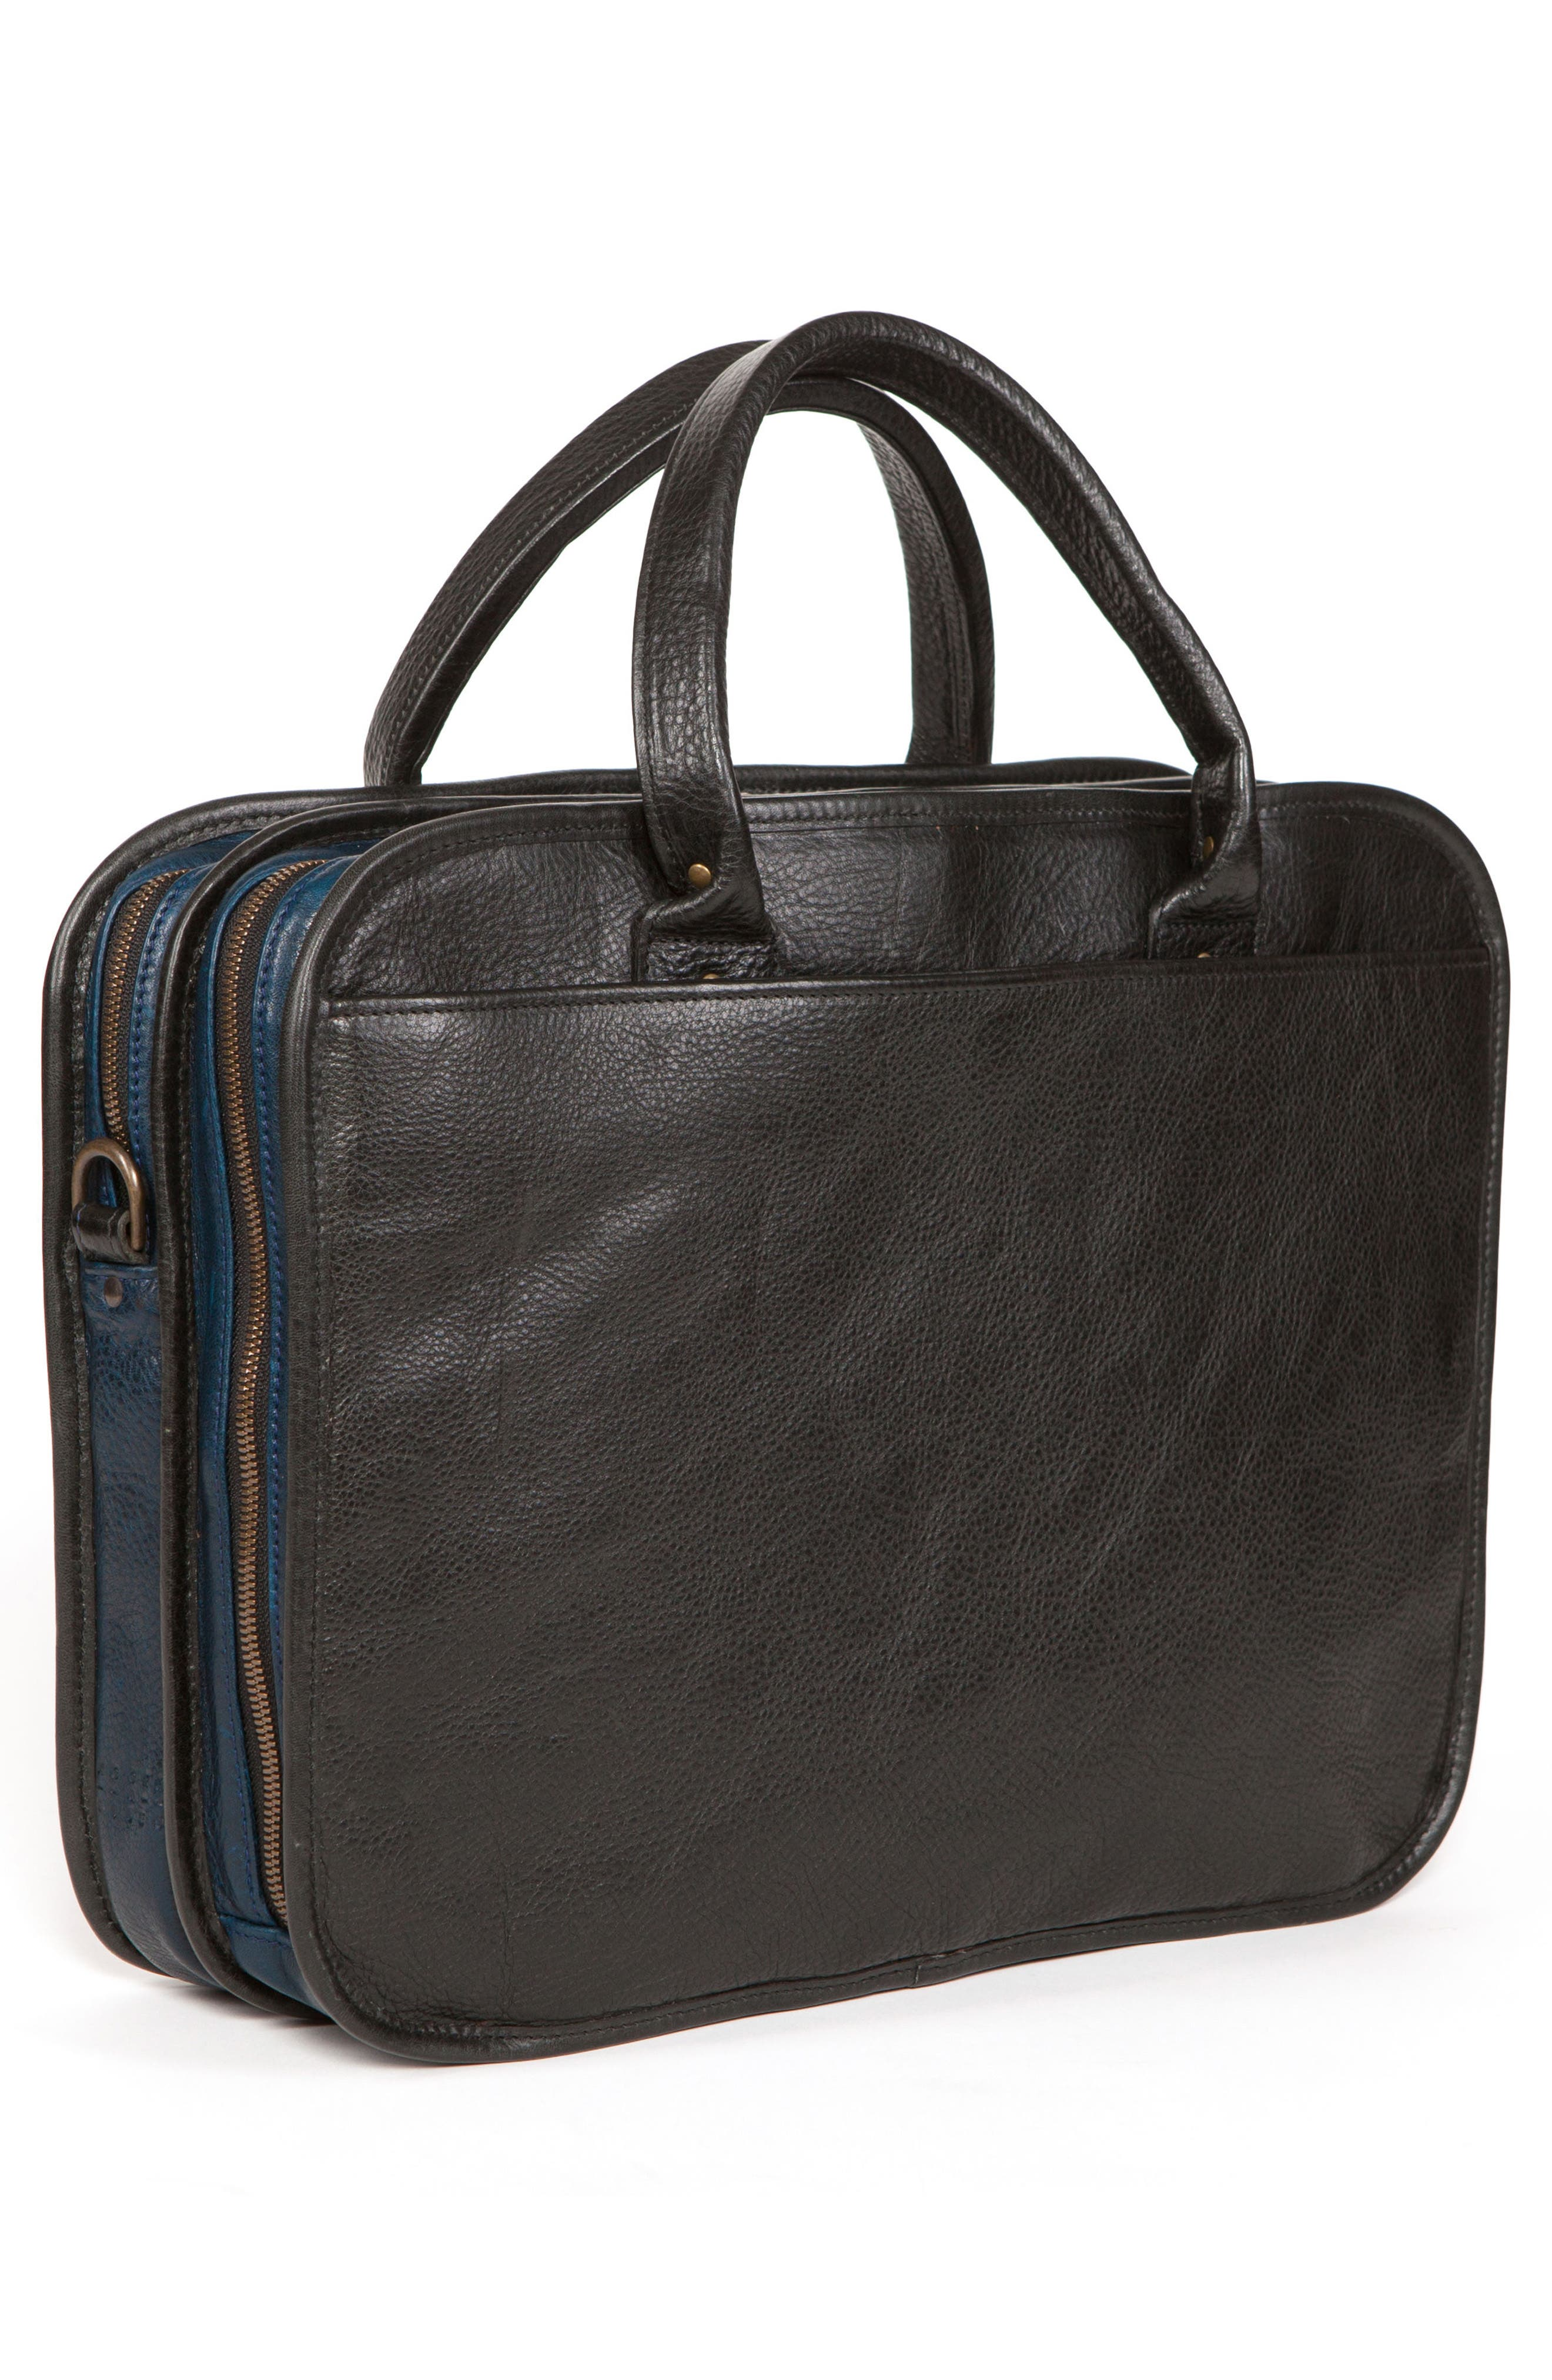 Miller Leather Briefcase,                             Alternate thumbnail 3, color,                             Titan Milled Navy And Gunmetal